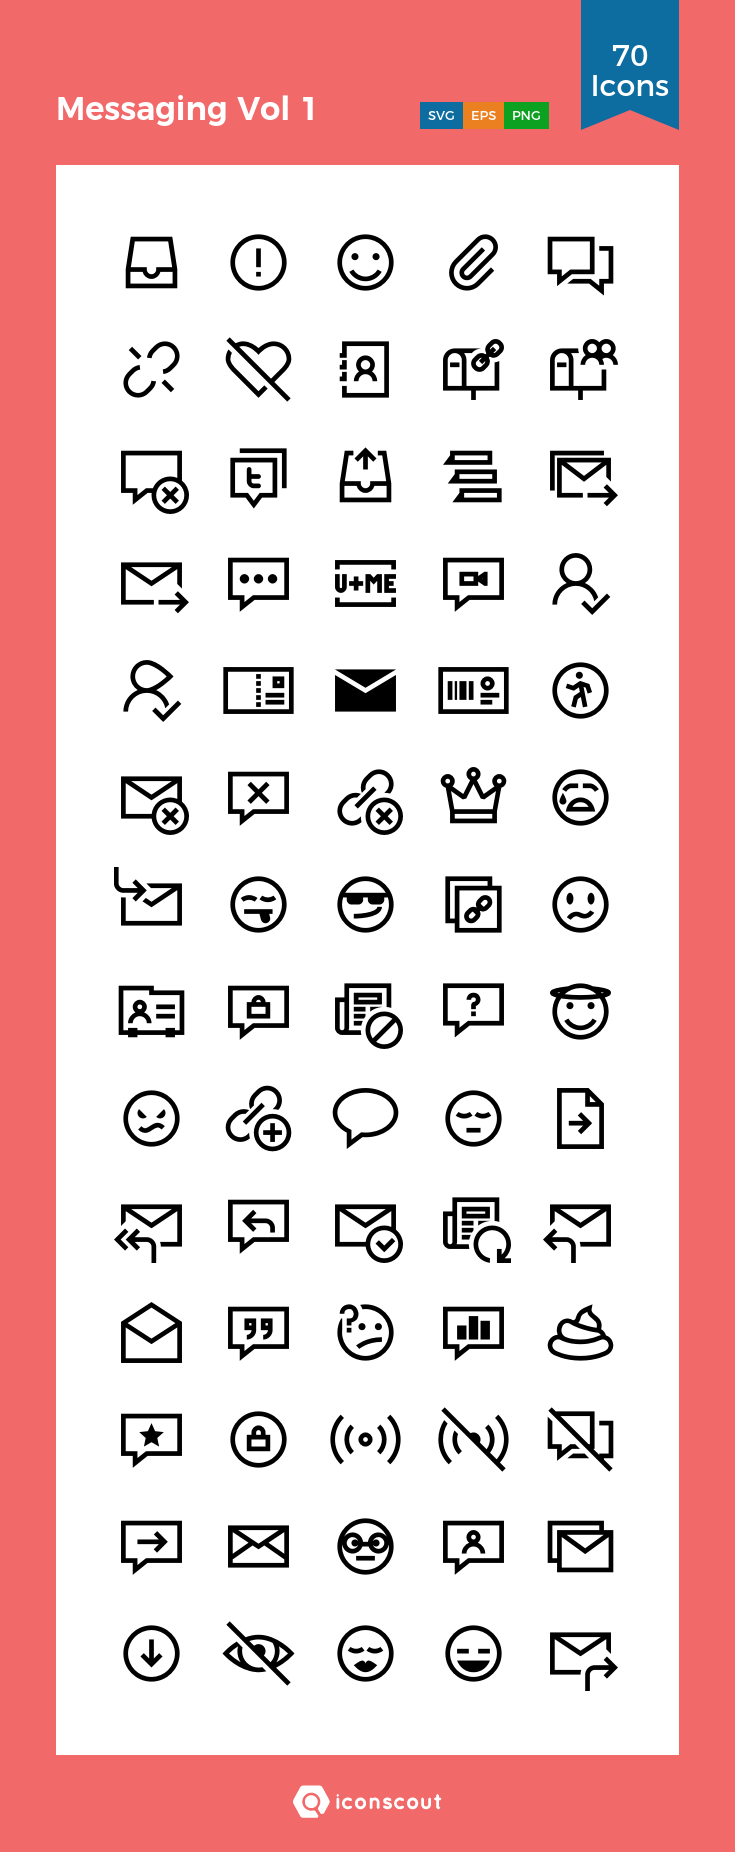 Download Messaging Vol 1 Icon Pack Available In Svg Png Eps Ai Icon Fonts Icon Pack Icon Icon Font